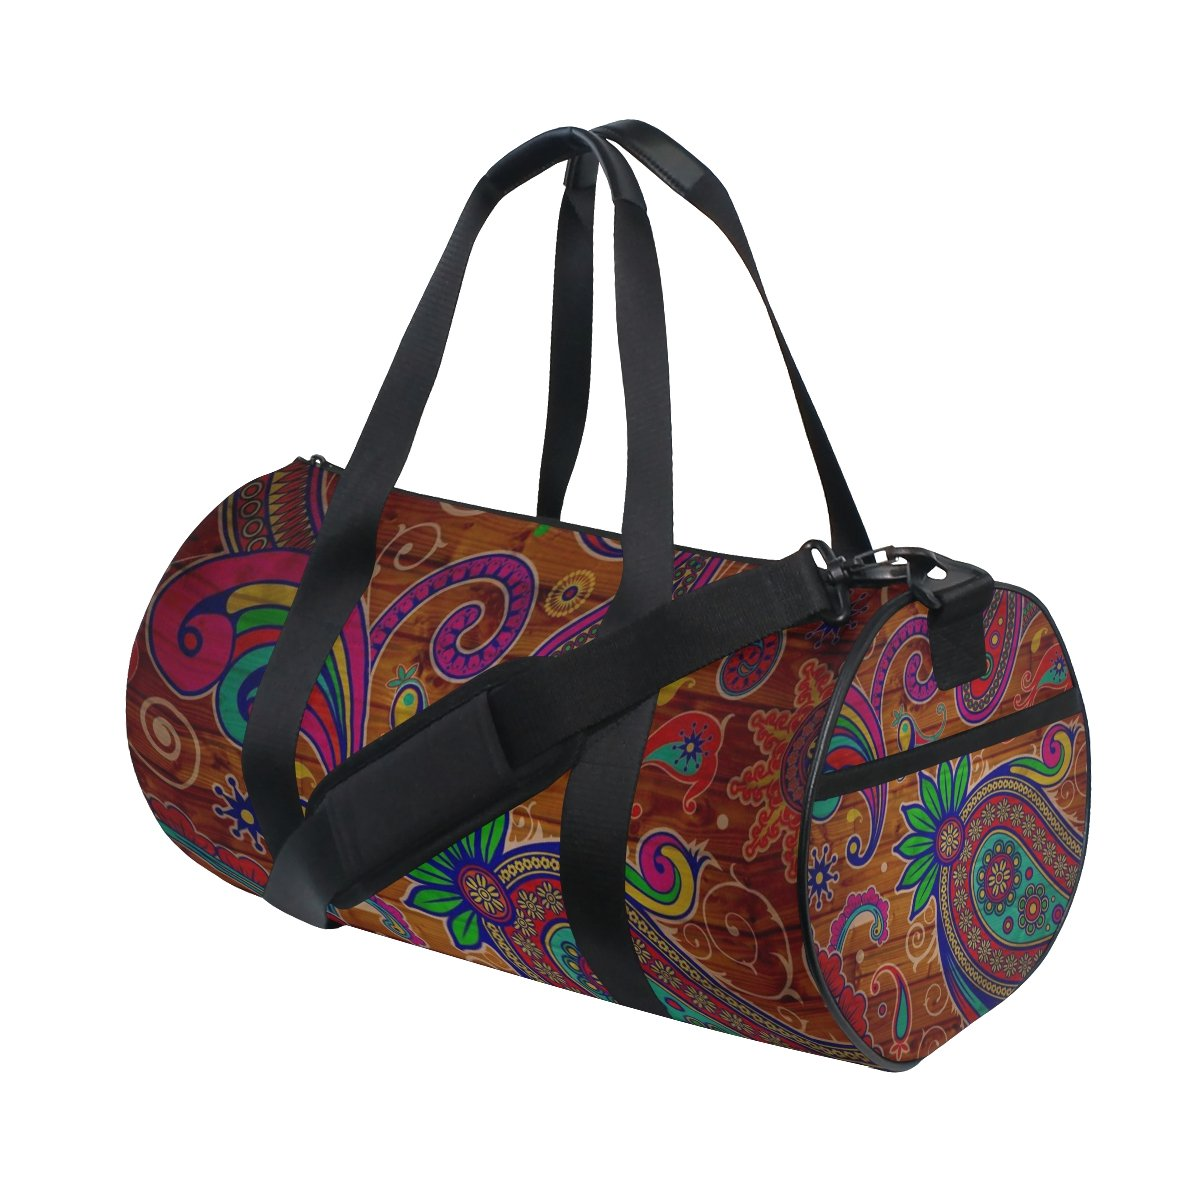 Pattern Texture Colorful Lightweight Canvas Sports Travel Duffel Yoga Gym Bag